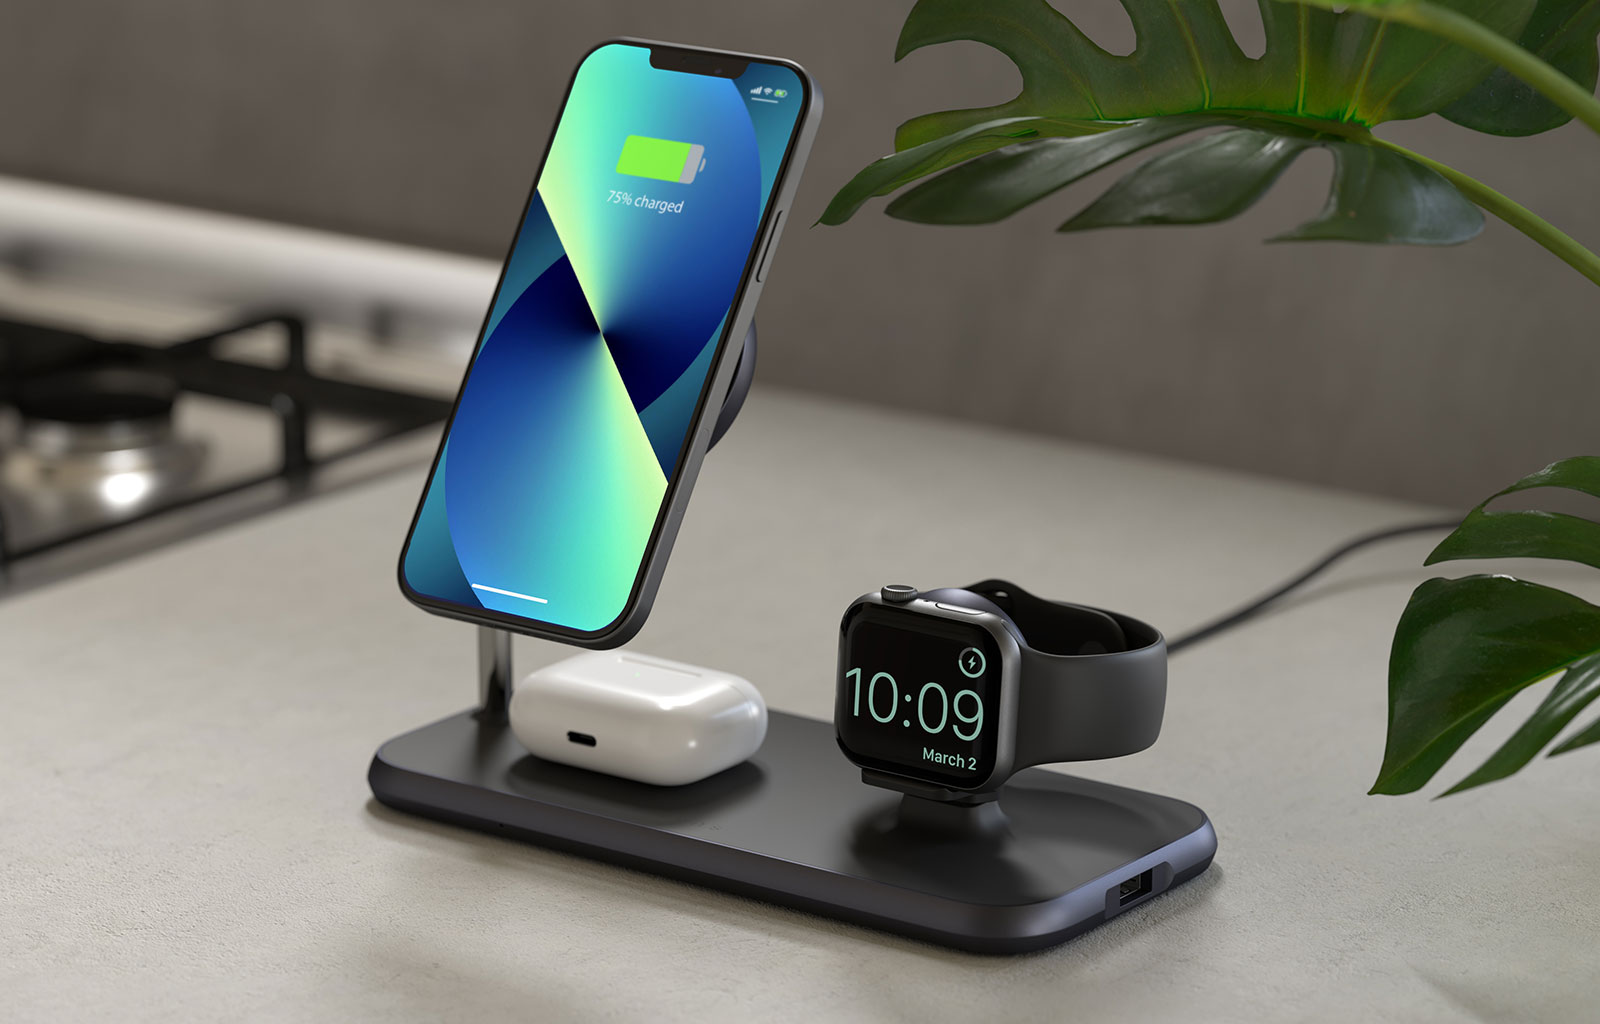 Magnetic+Watch wireless charger with iPhone 13